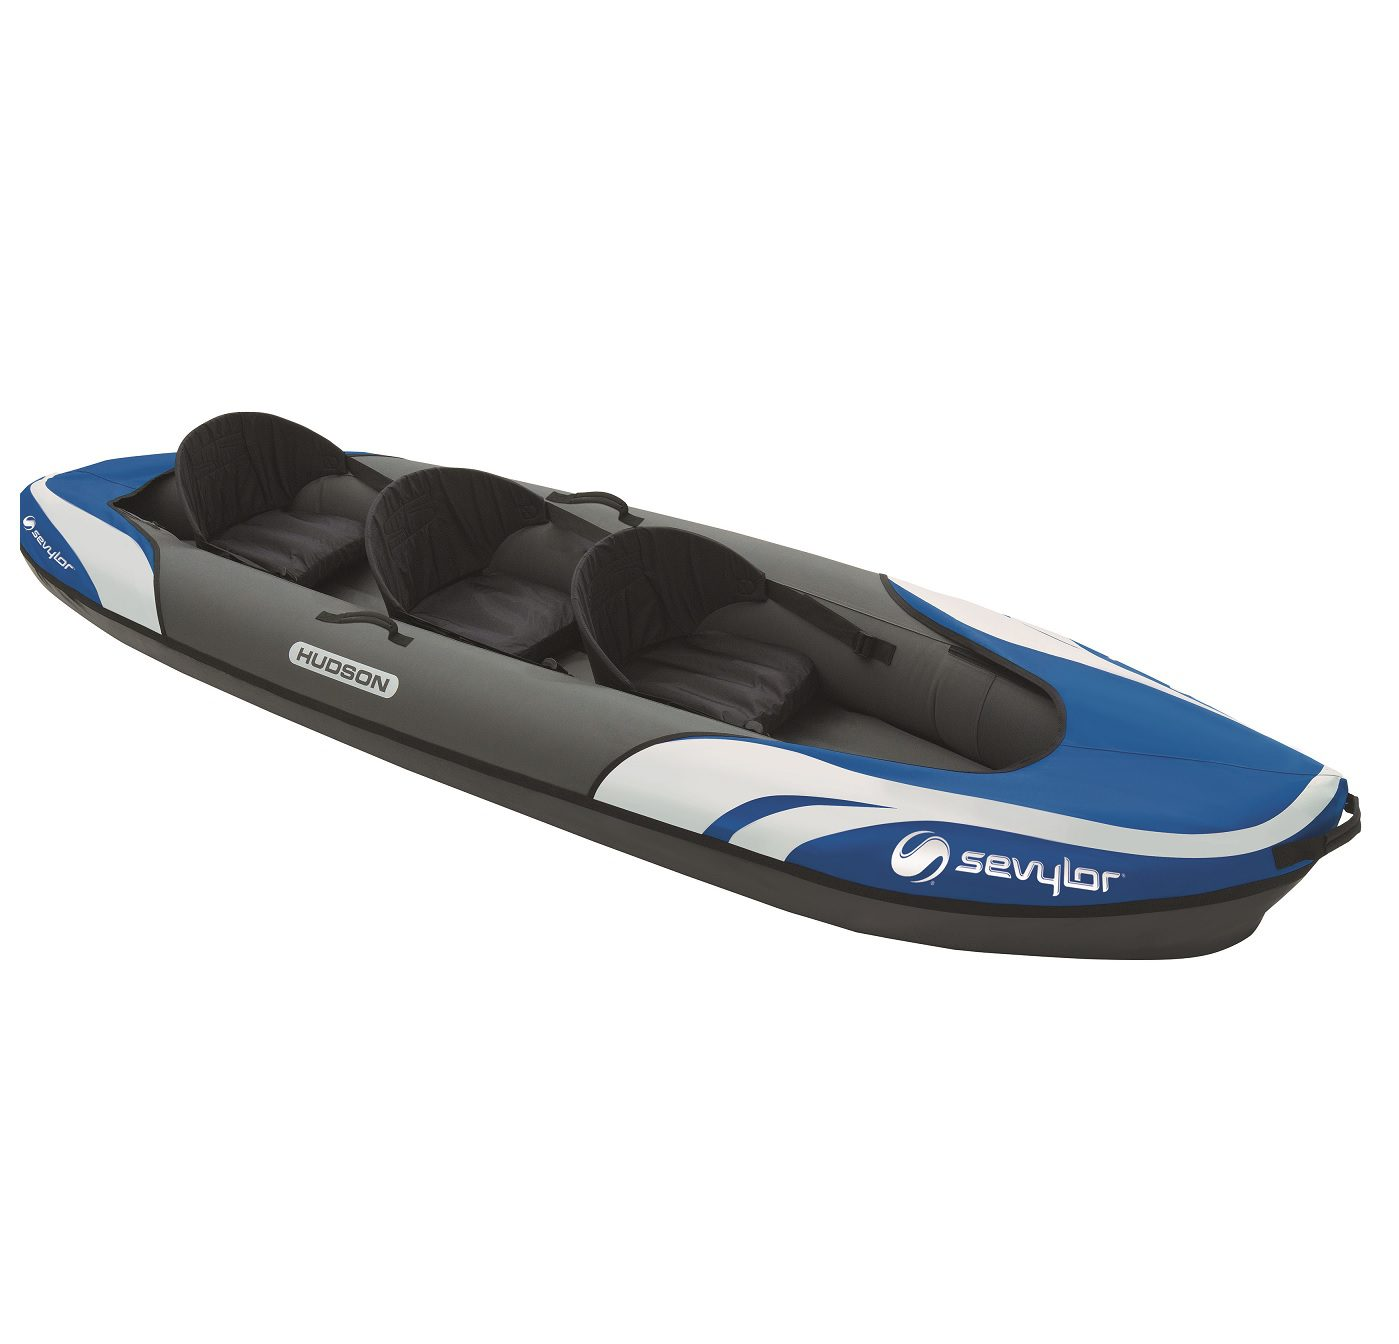 Sevylor Hudson Inflatable Kayak 2016 - 2000014708